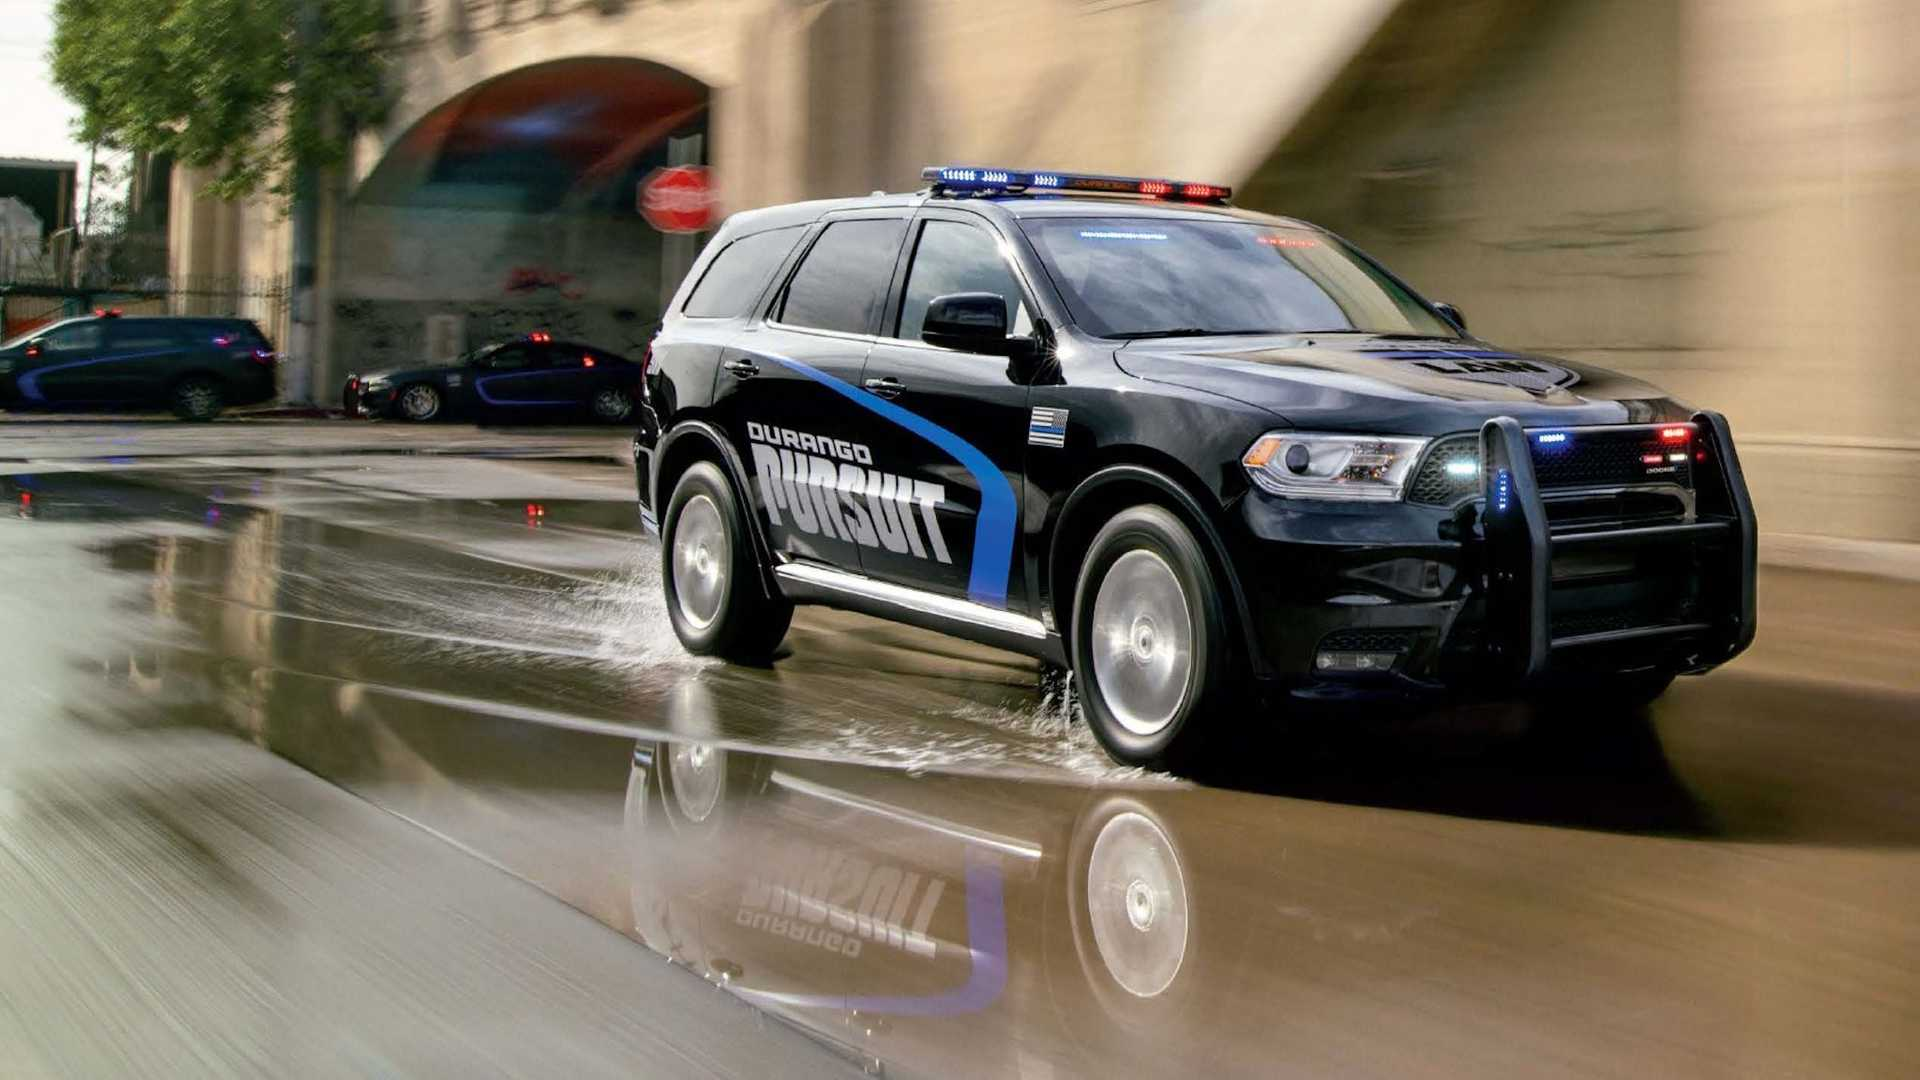 2021 Dodge Charger Durango Police Vehicles Receive Small Upgrades